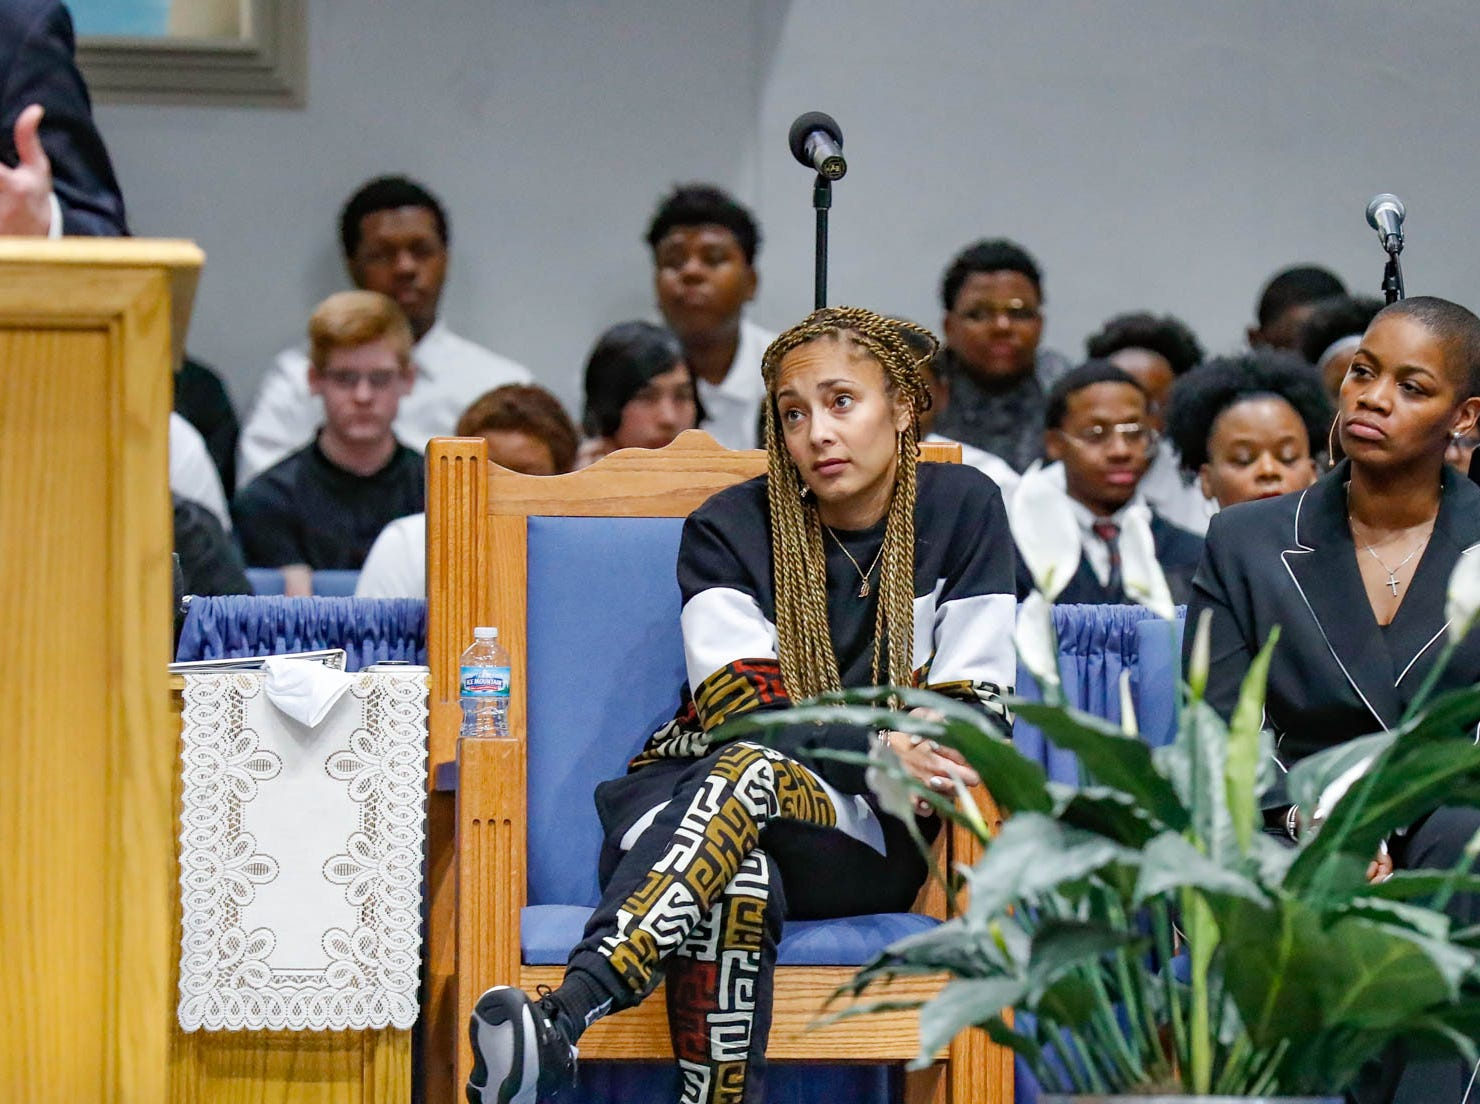 """American comedian, actress, disc jockey (DJ), recording artist and radio personality, Amanda Seales, seated right, listens to Indianapolis Mayor Joe Hogsett speak during the annual Steward Speakers Lecture Series event, held at Olivet Missionary Baptist Church in Indianapolis on Thursday, Feb. 21, 2019. This years theme was """"Year of the woman""""."""